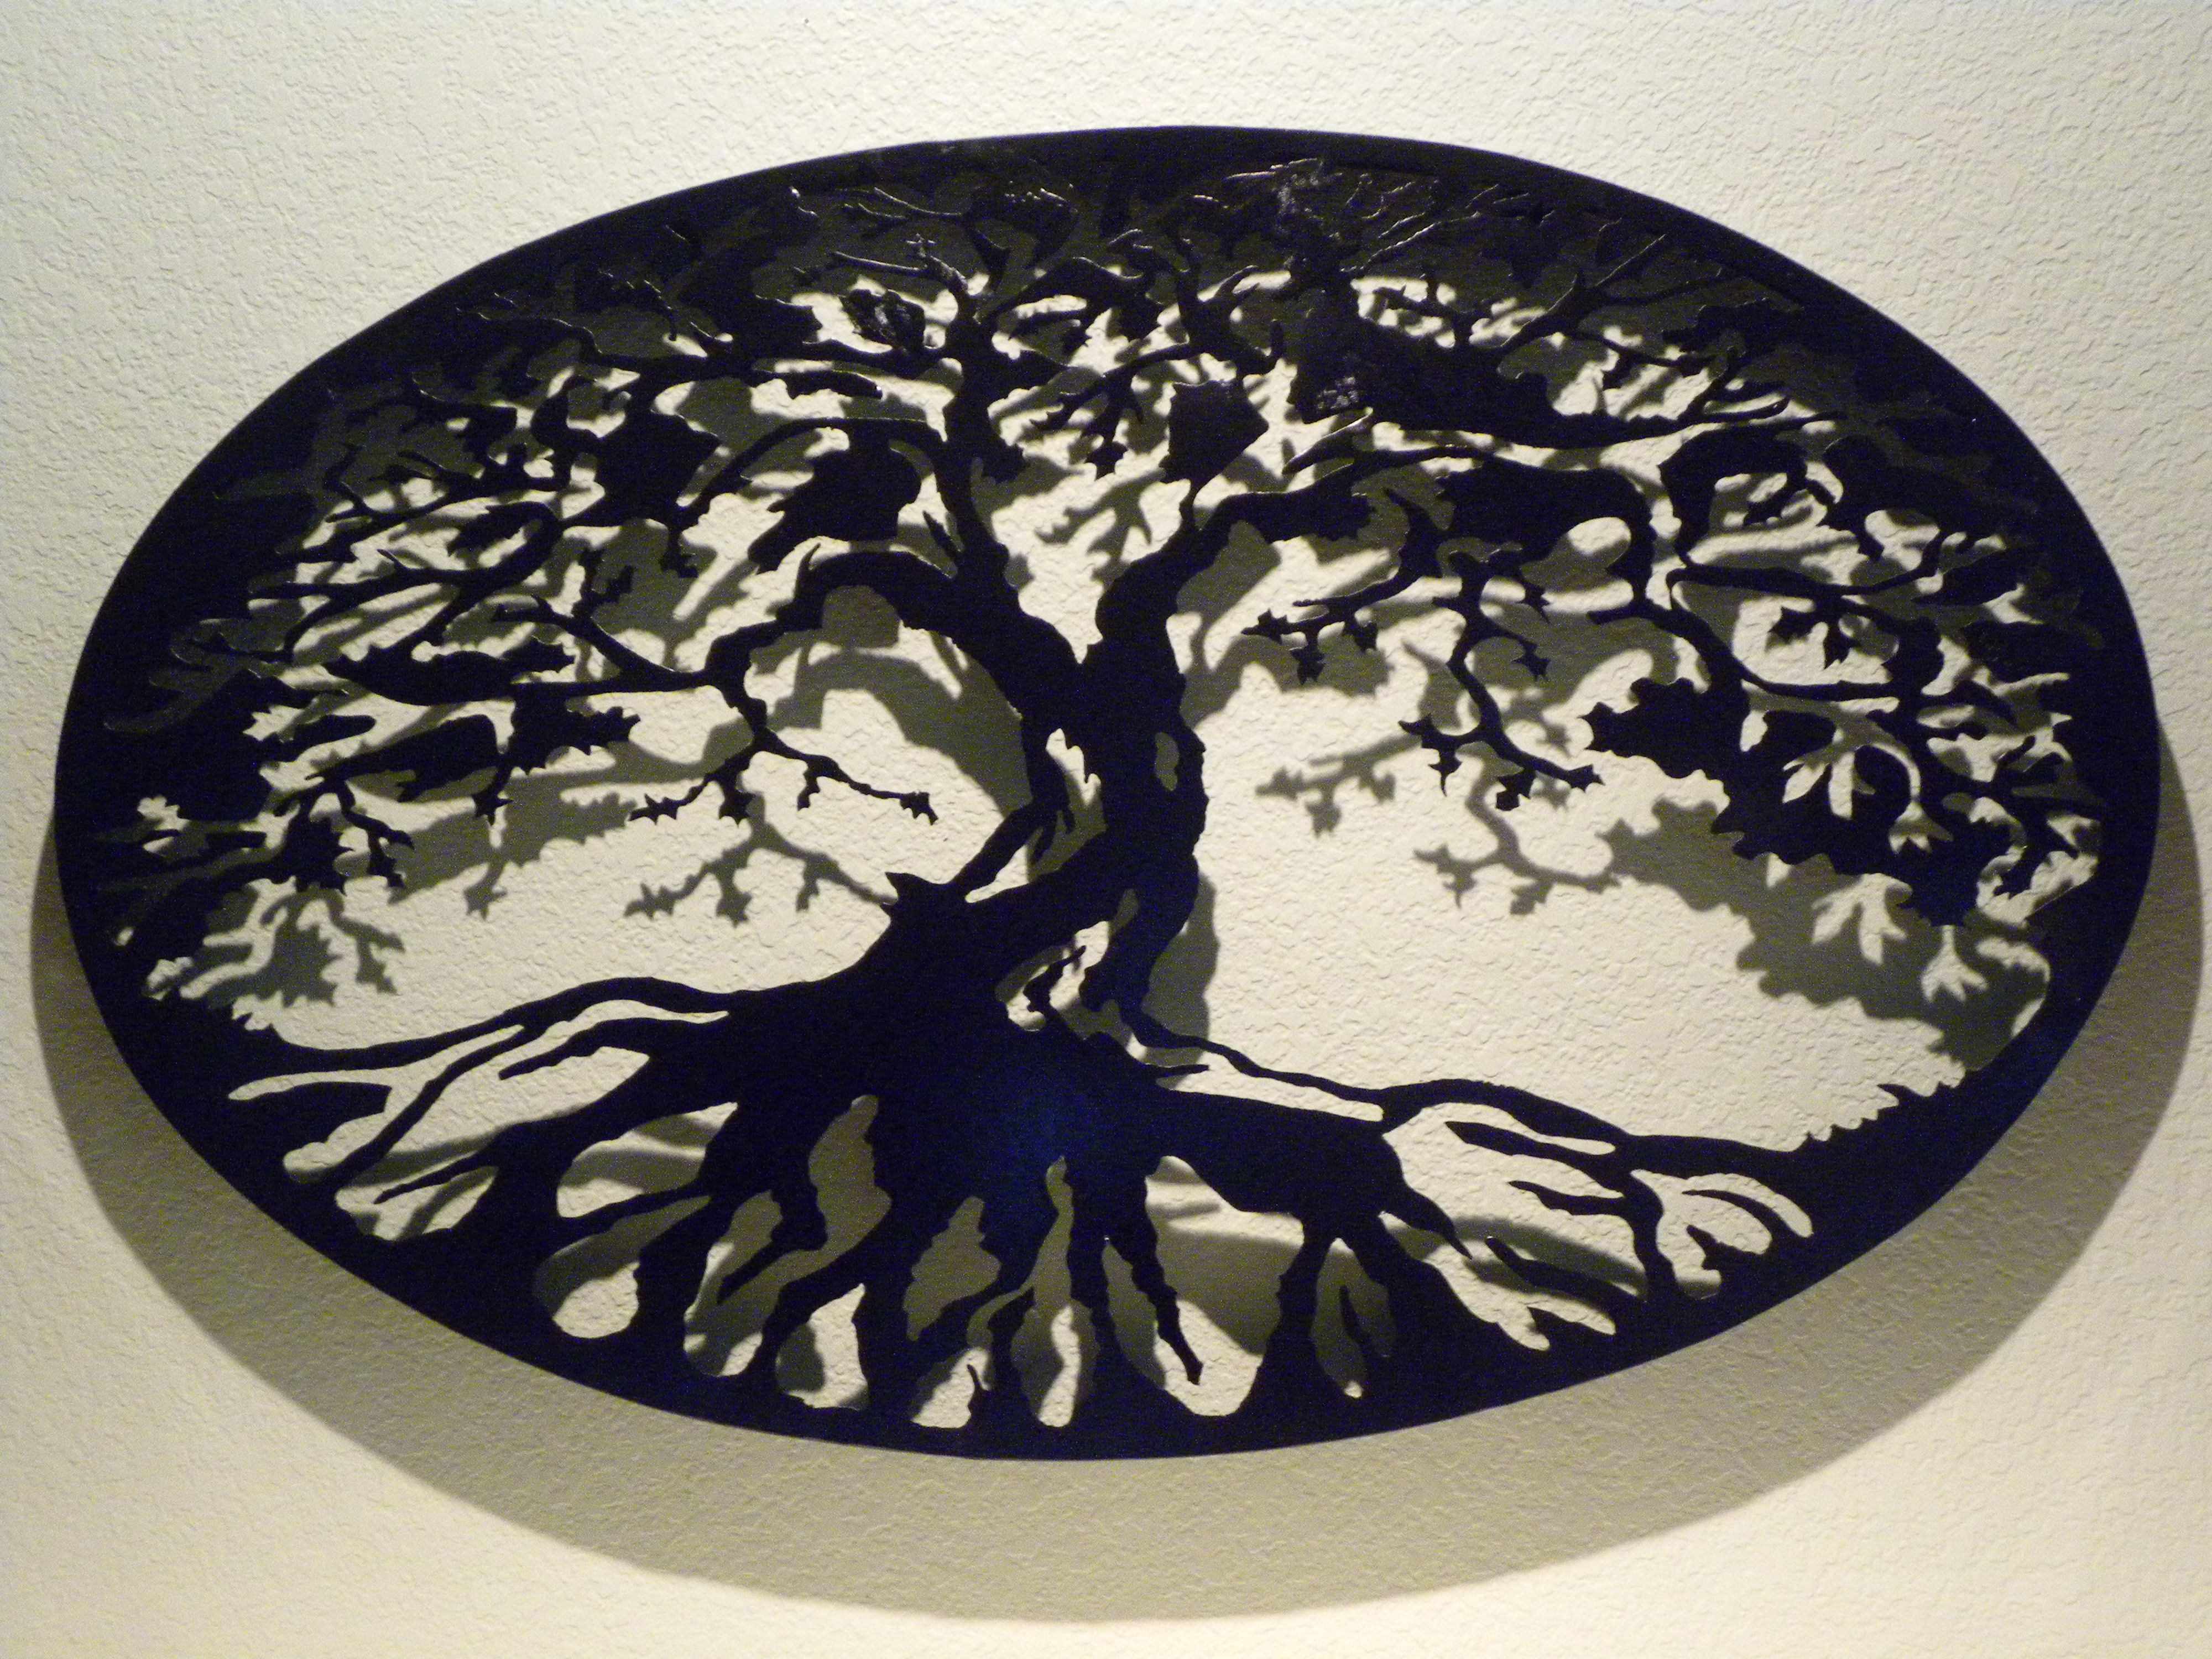 Buy A Custom Oval Tree Of Life Metal Wall Art, Made To Order From Inside 2020 Tree Of Life Wall Decor (Gallery 5 of 20)